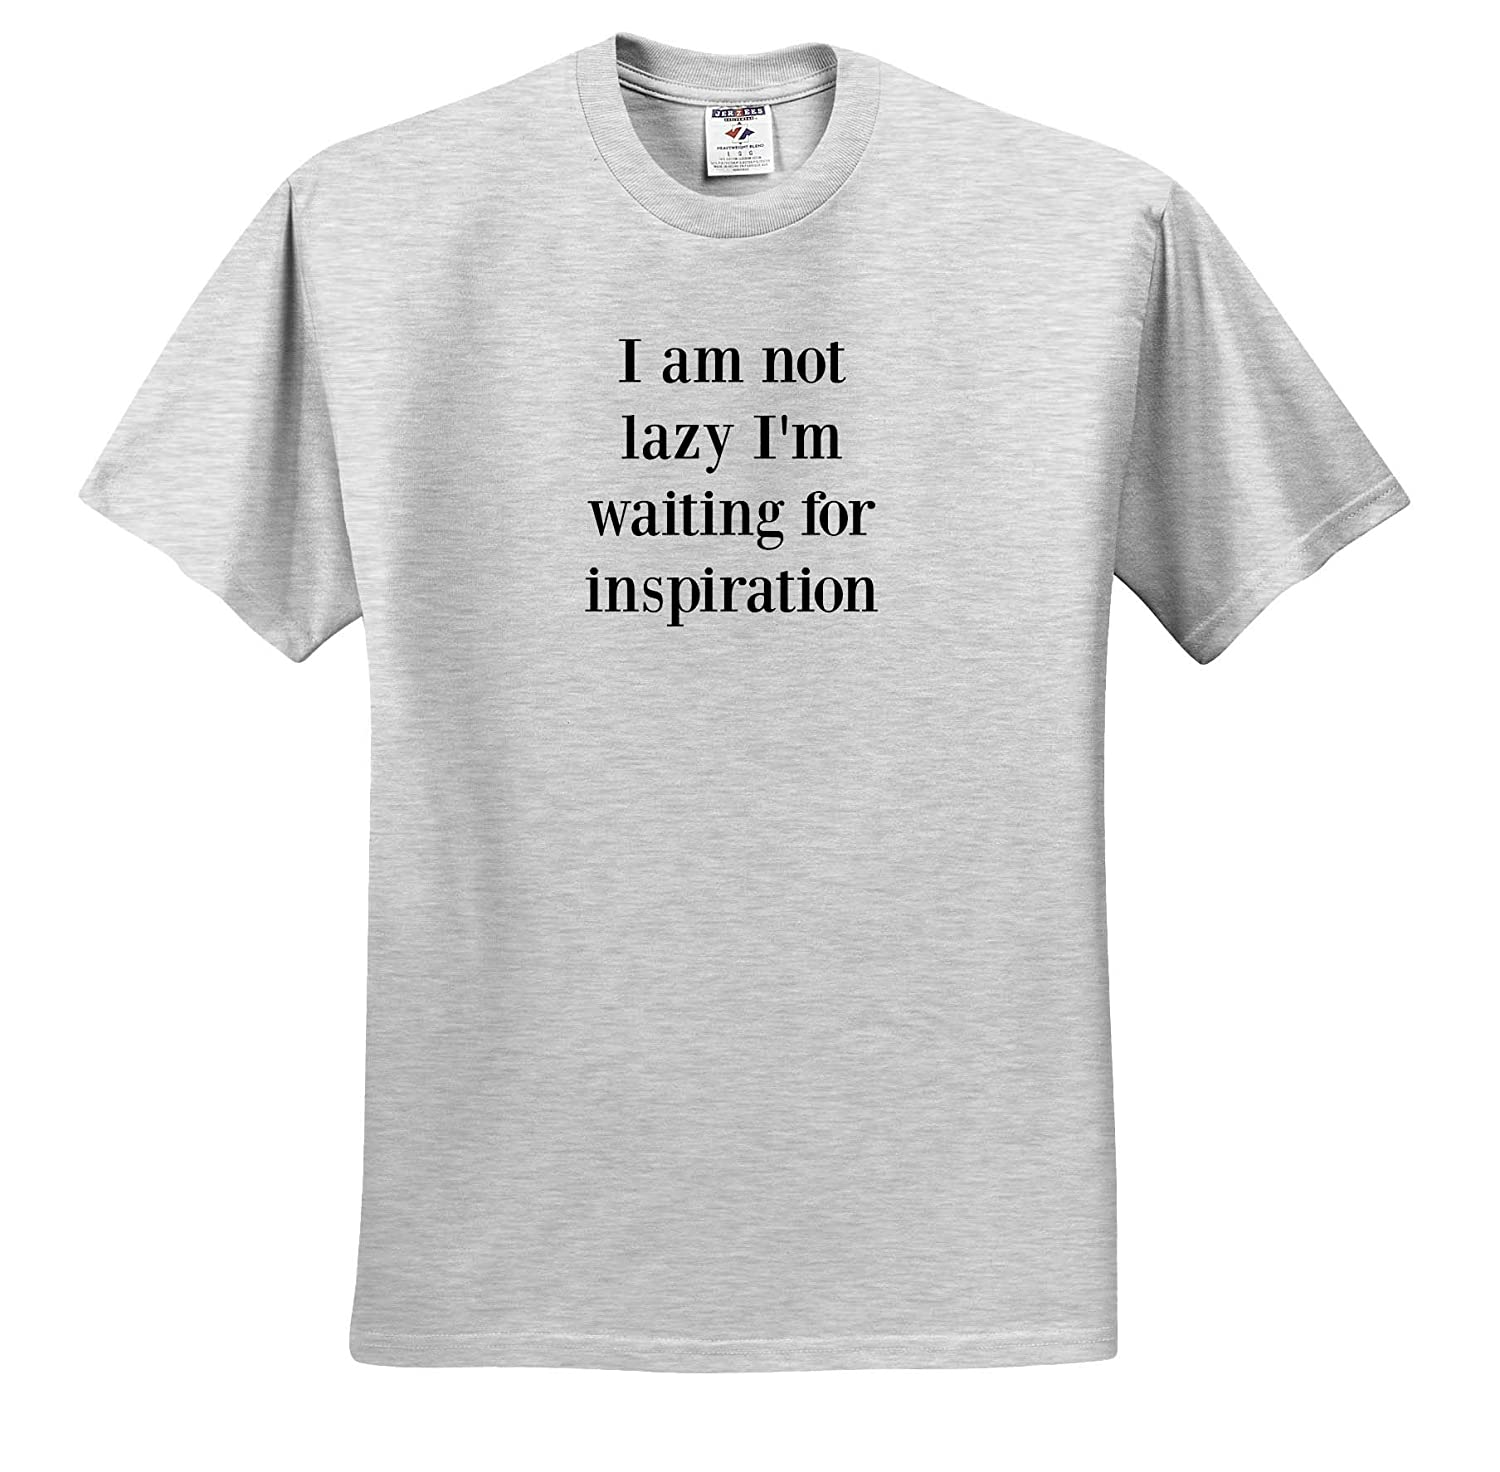 Adult T-Shirt XL ts/_319427 Image of I Am Not Lazy Im Waiting for Inspiration Quote 3dRose Gabriella-Quote